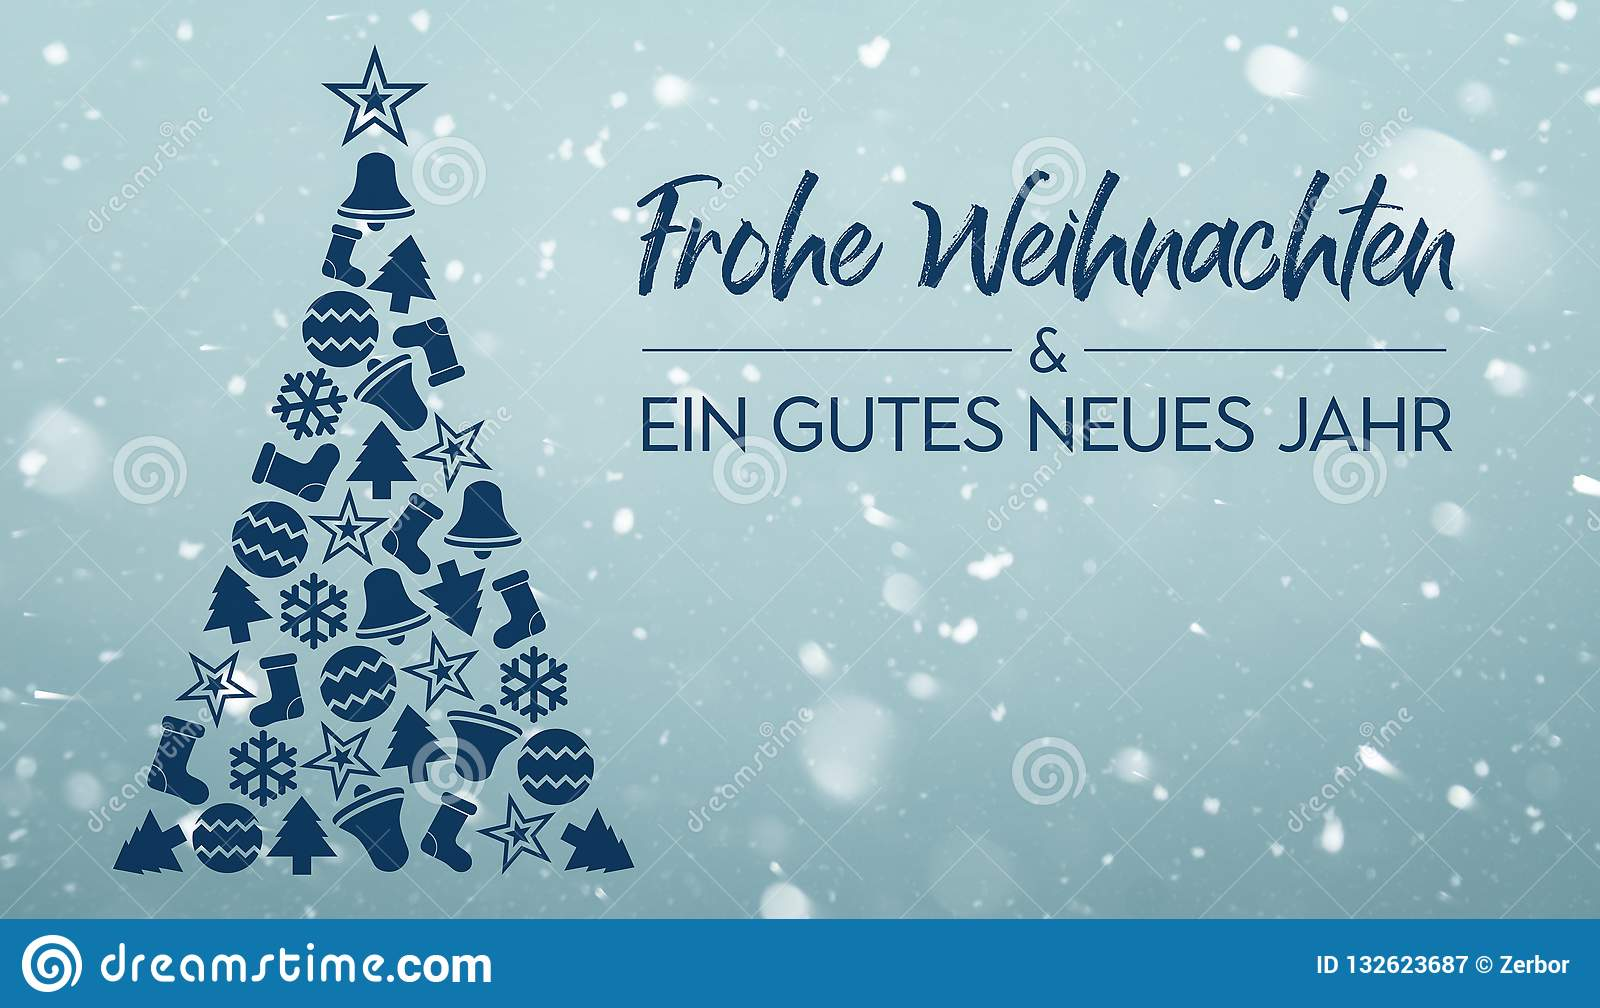 Bilder Frohe Weihnachten Merry Christmas.Frohe Weihnachten Und Ein Gutes Neues Jahr Merry Christmas And